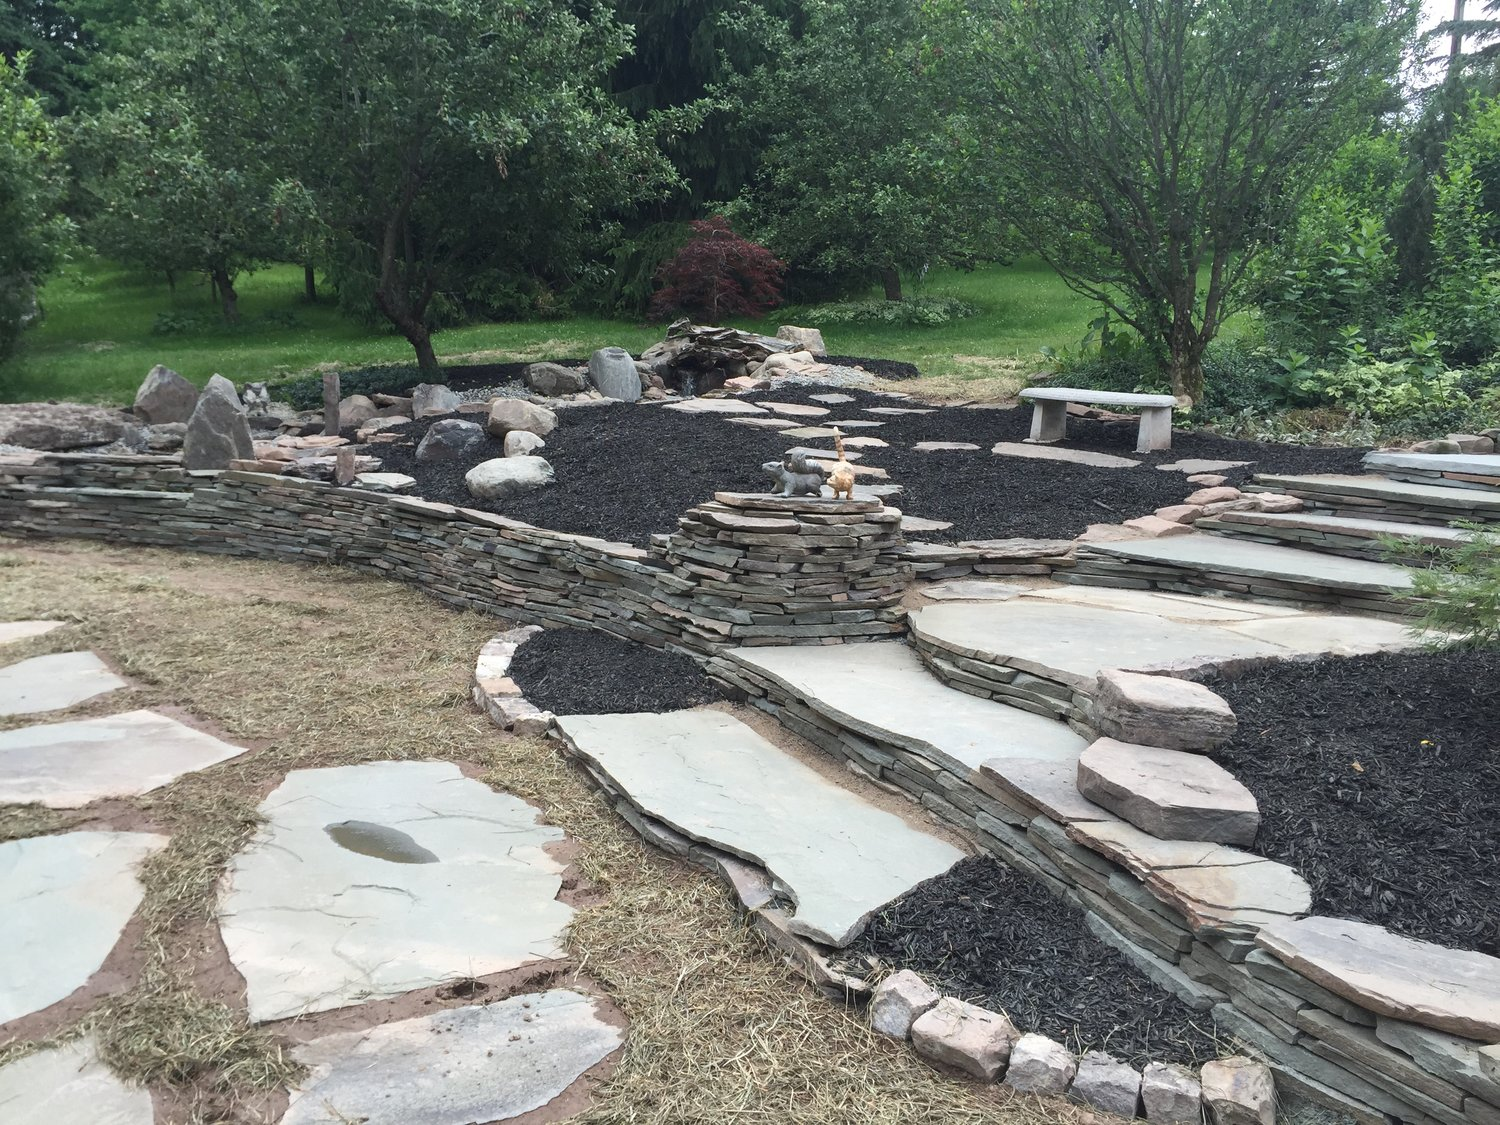 One-of-a Kind Yard Design and Landscaping - Natural Stone — Yard Art Landscaping